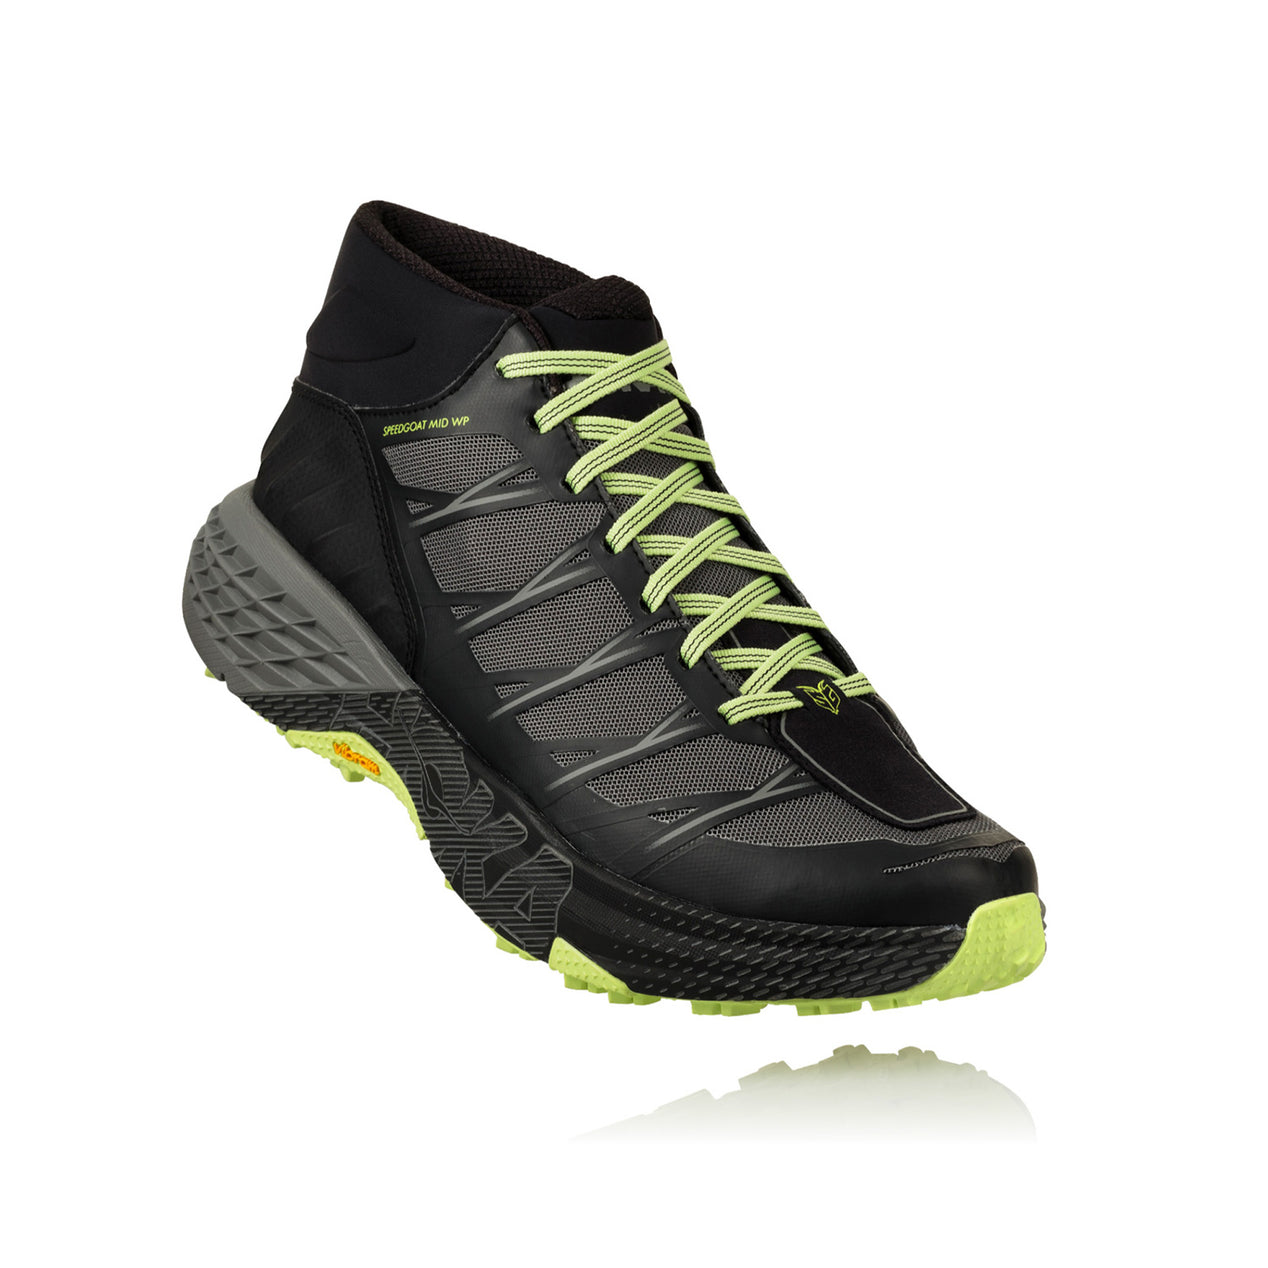 Hoka One One Men s Speedgoat Mid Wp Trail Runnning Shoes  c2adecd630a